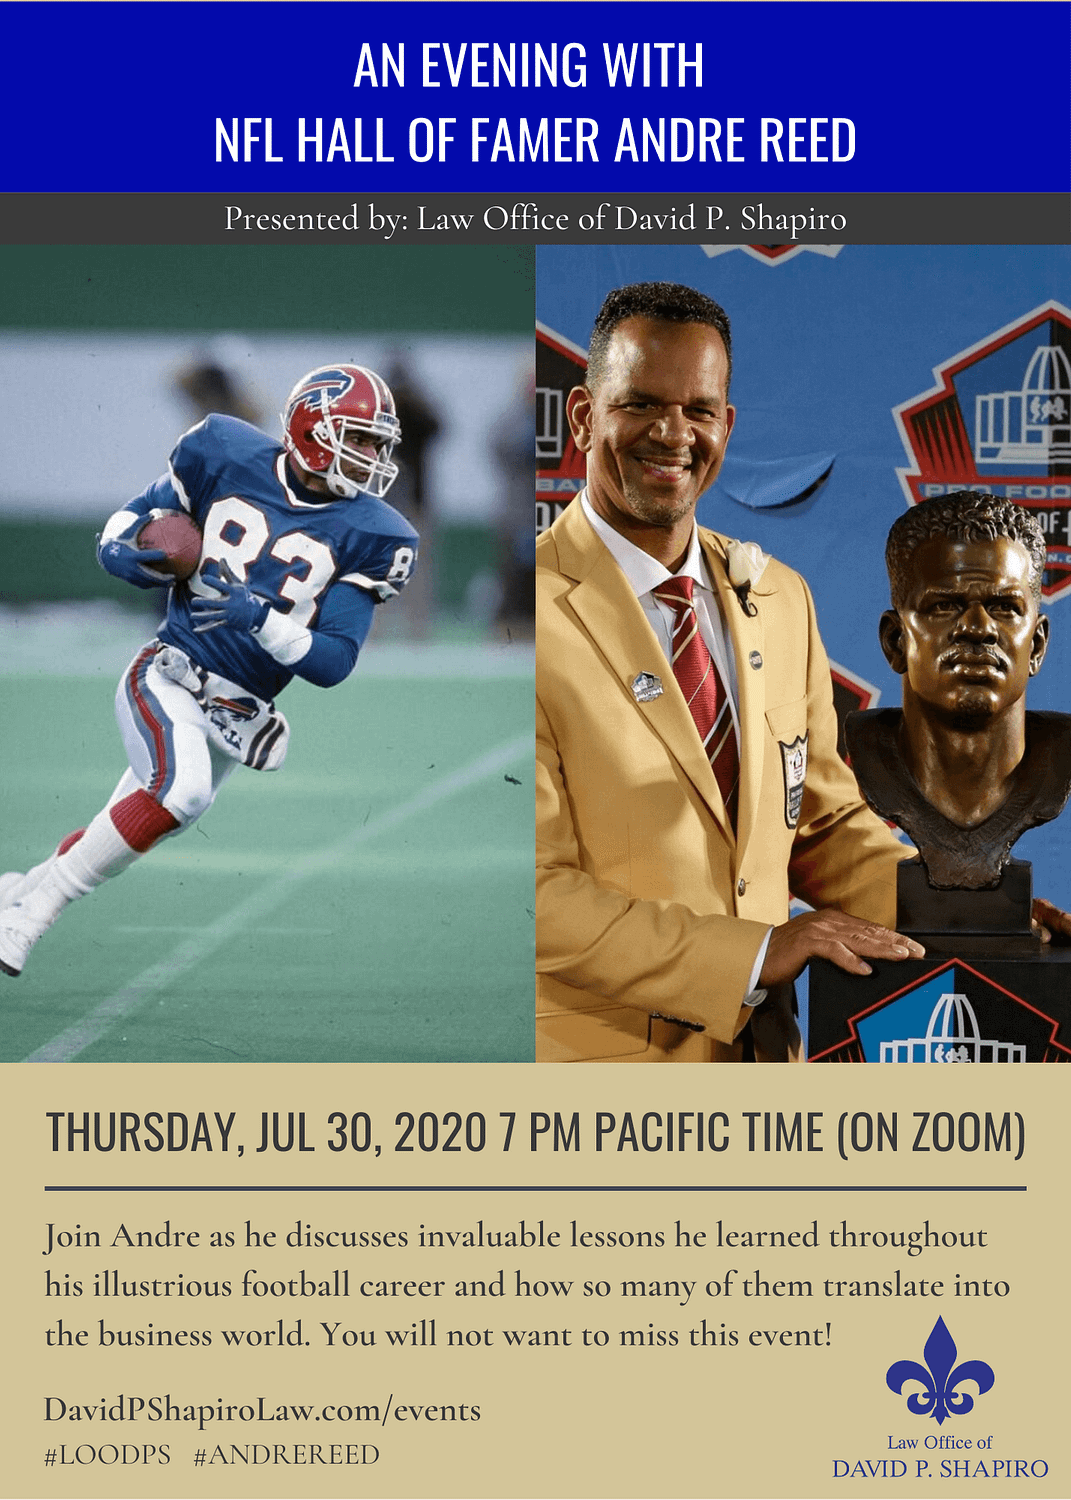 An evening with Andre Reed